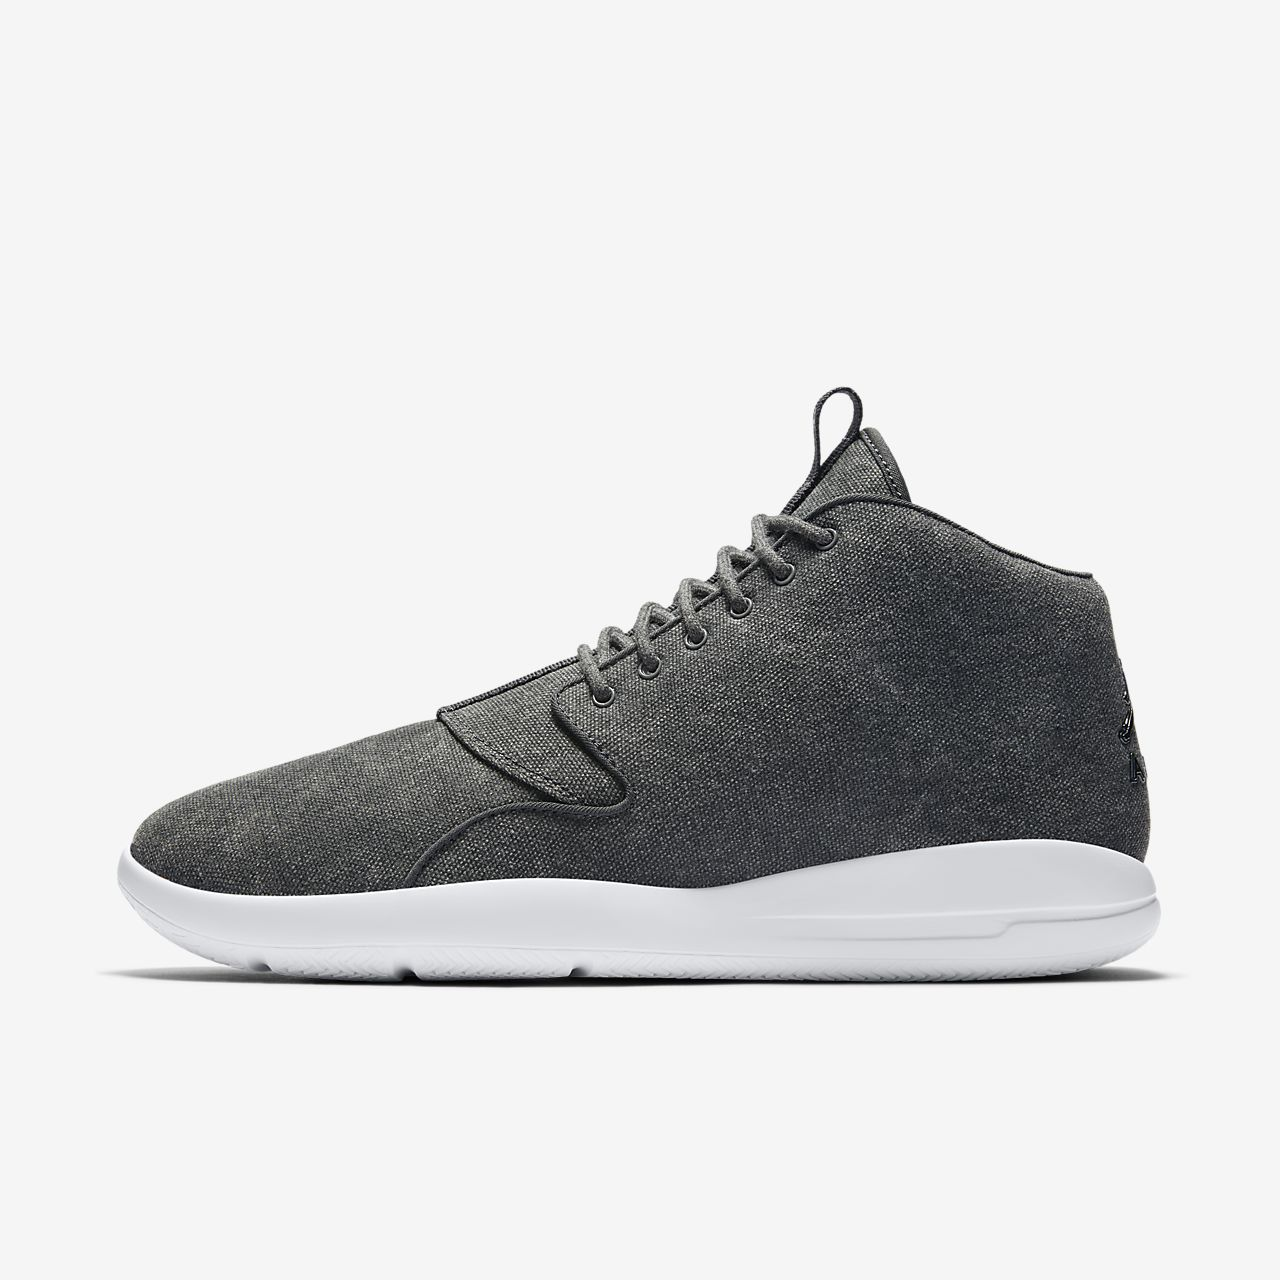 ... Jordan Eclipse Chukka Men's Shoe